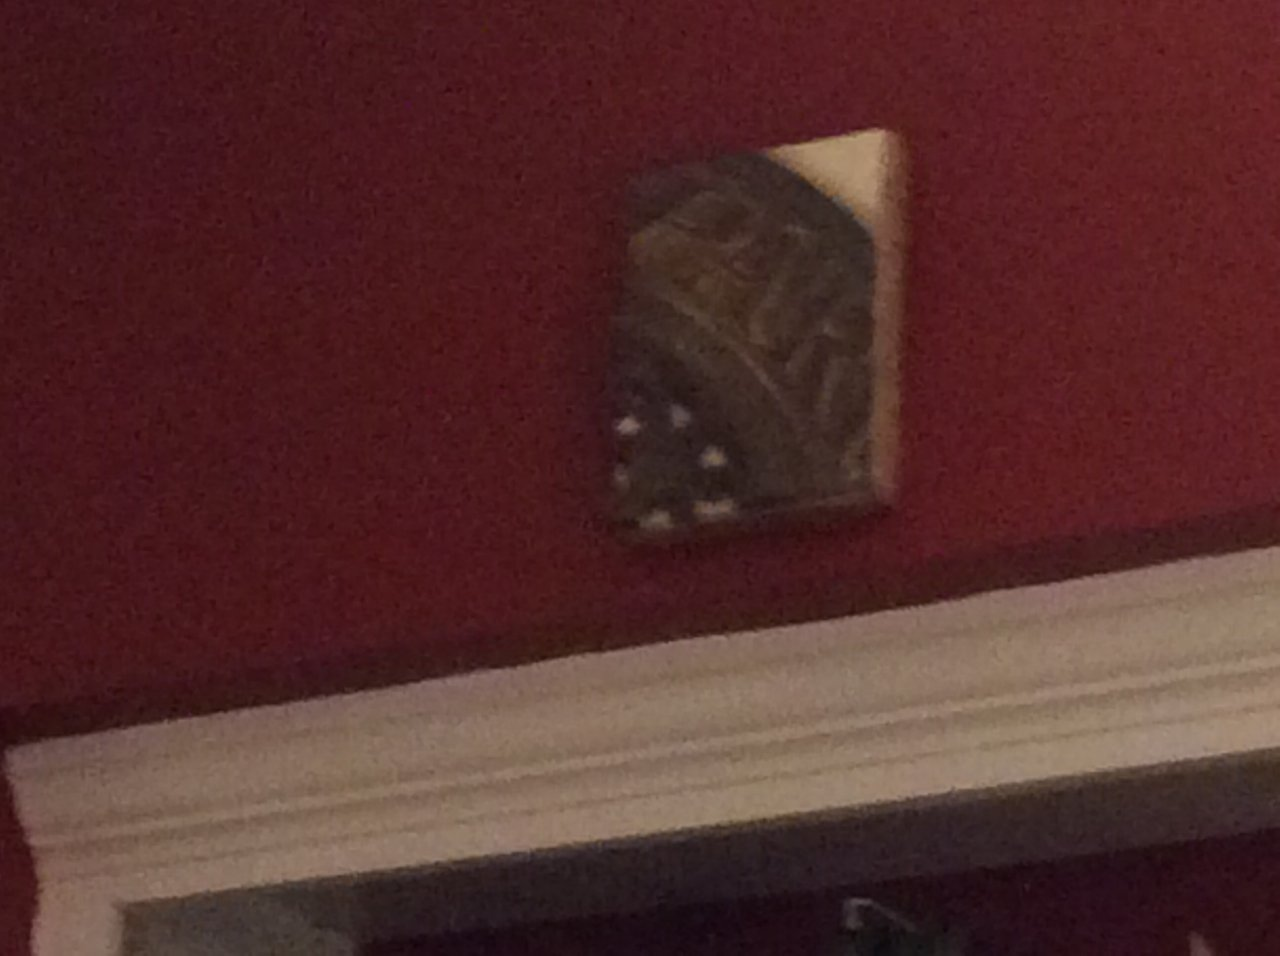 These Are Rather Heavy Plaster Plaques I D Like To Know If I Can Get Anoth Artifact Collectors